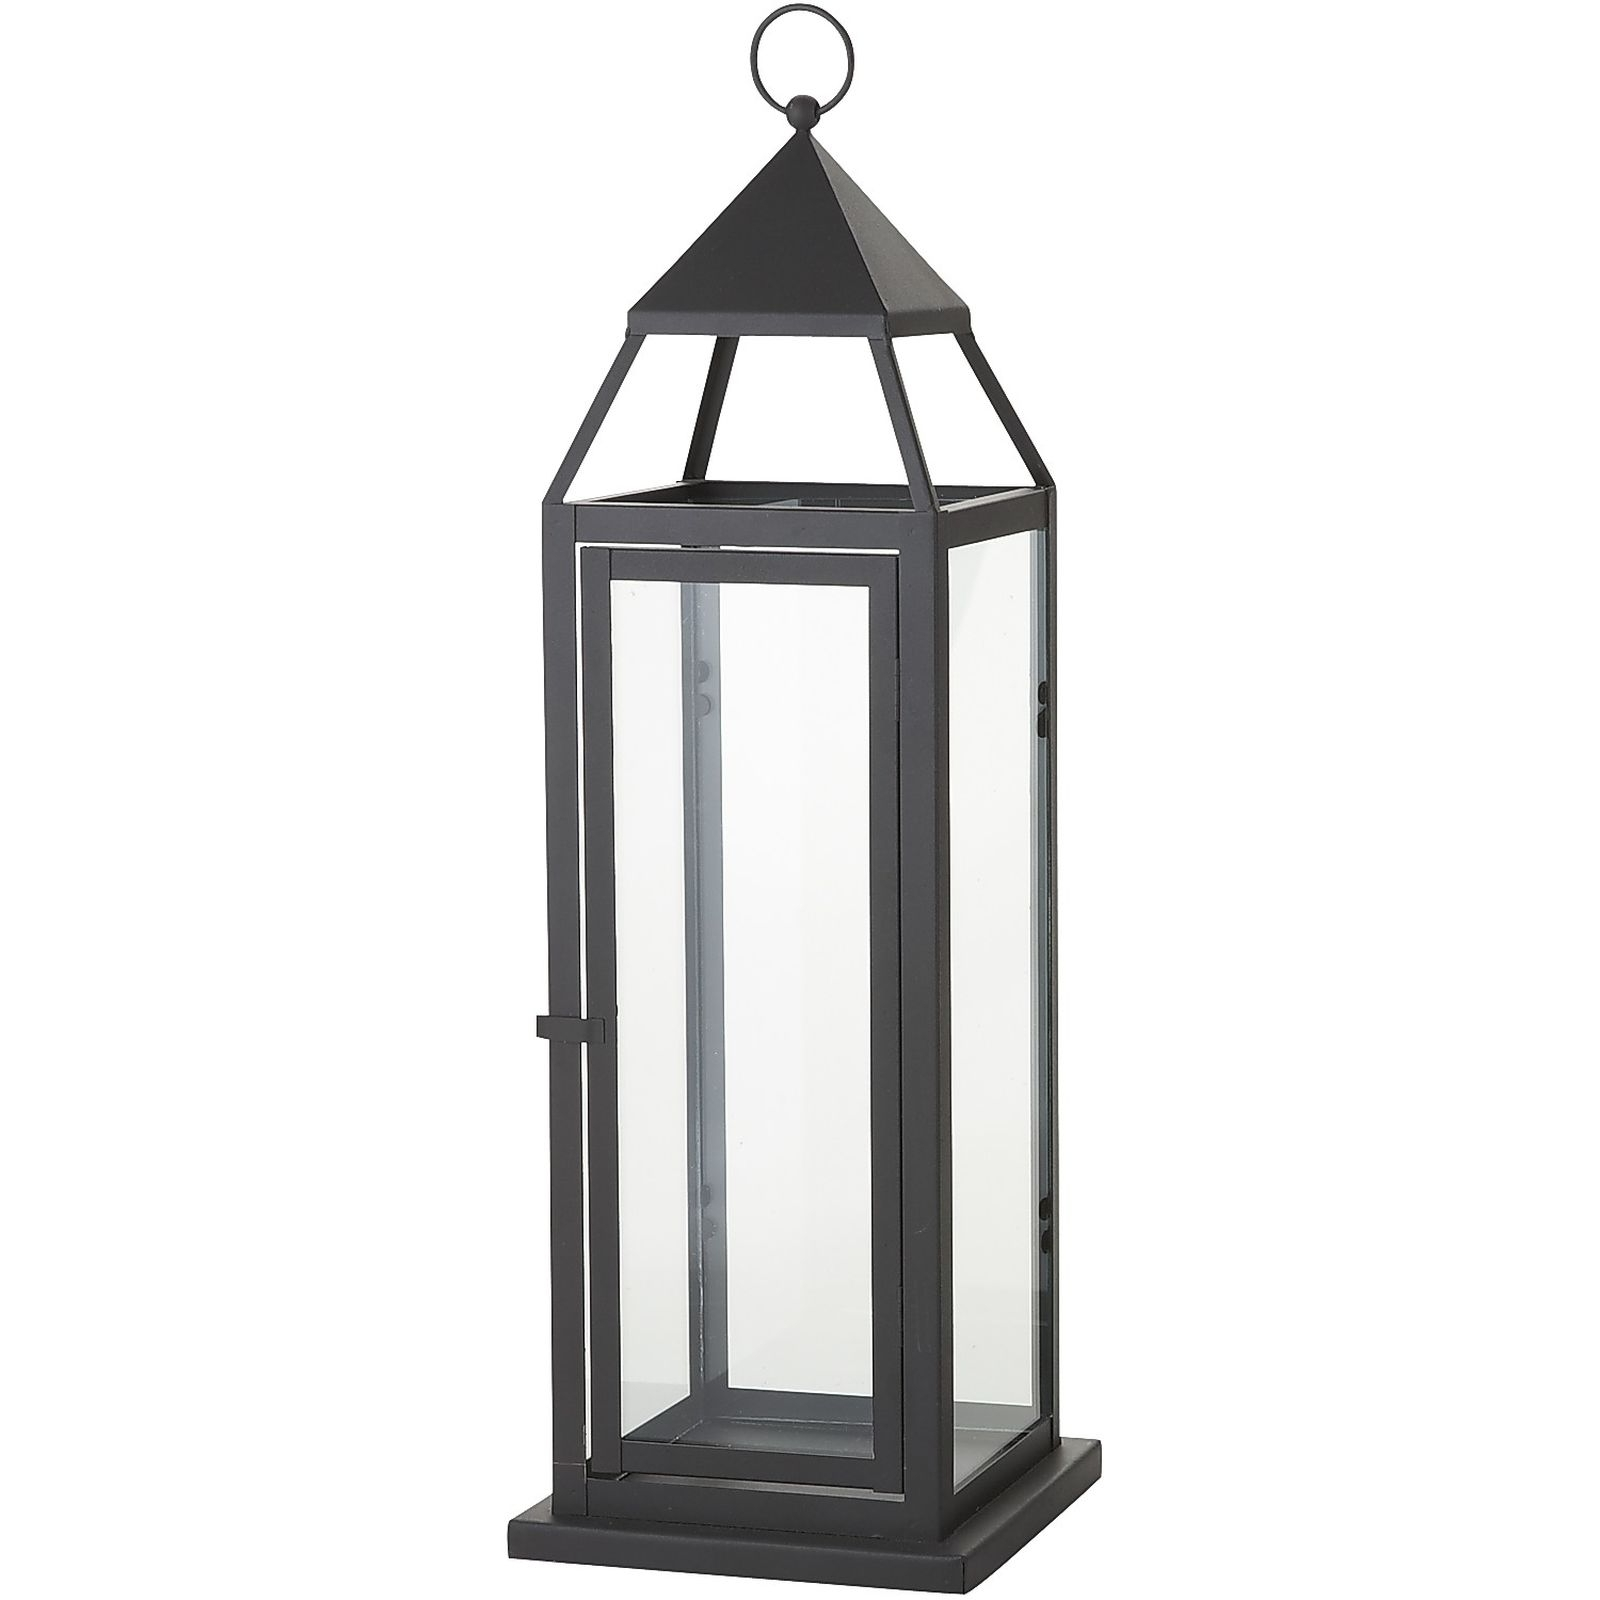 Favorite Large Hanging Outdoor Candle Lanterns – Outdoor Designs Inside Outdoor Hanging Lanterns With Stand (View 16 of 20)